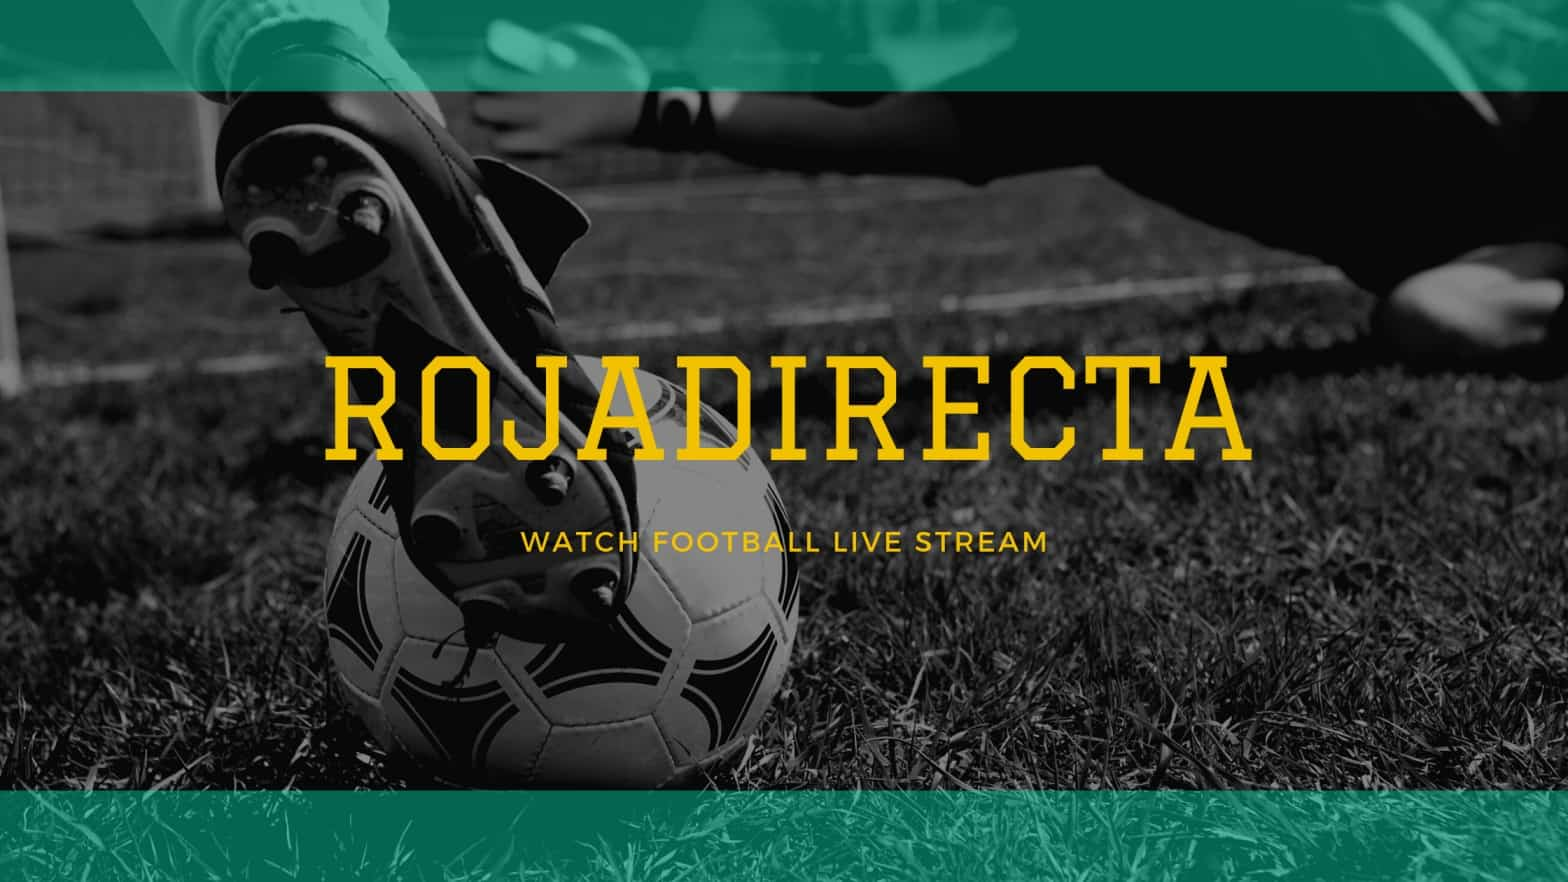 Rojadirecta - Watch Football Live Stream for Free 2021